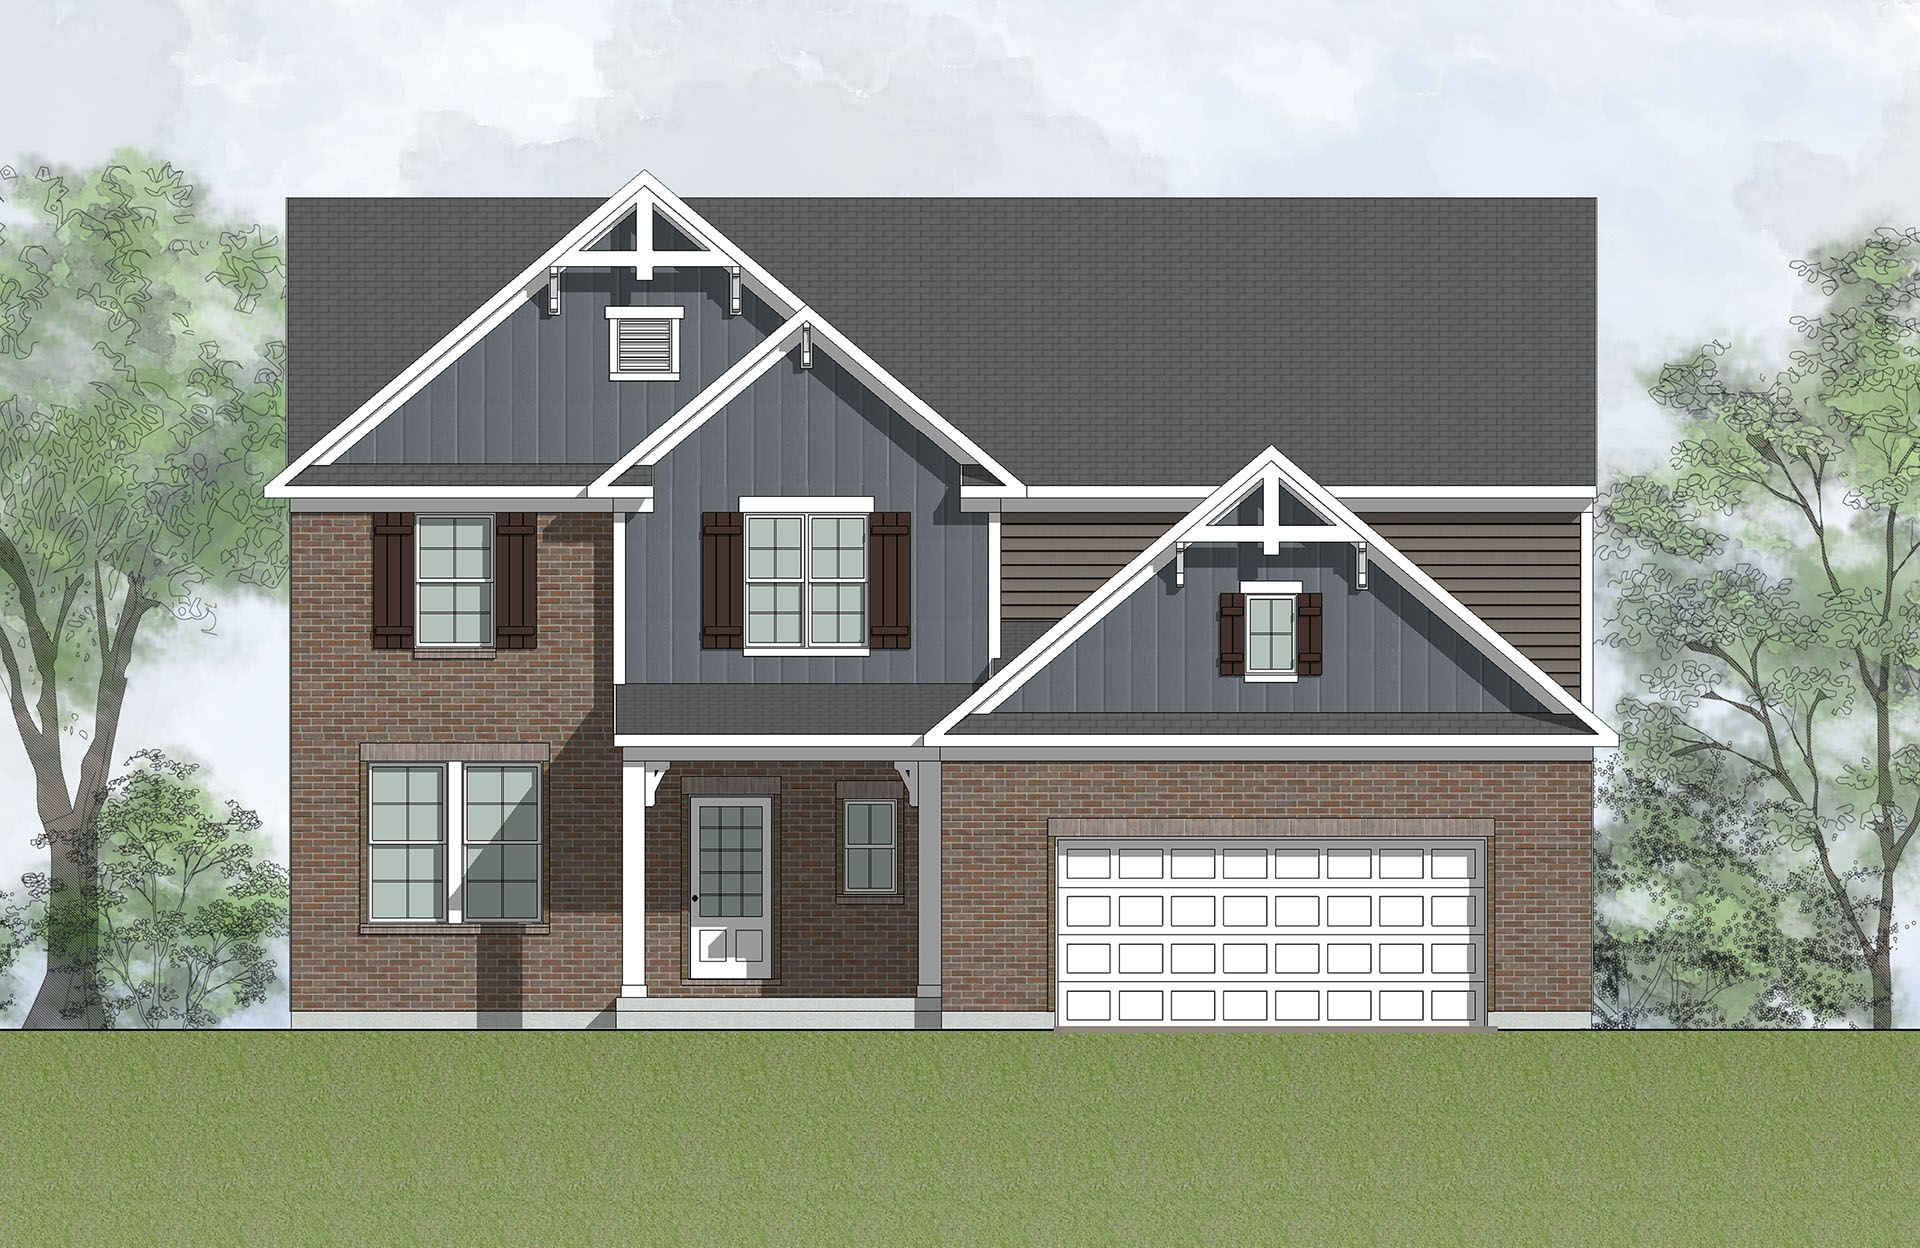 Drees Homes New Home Plans in Cleves OH | NewHomeSource on green home designs, fisher home designs, stone home designs, evans home designs, eco-friendly home designs, sullivan home designs, simple home designs, smith home designs, ross home designs, murphy home designs, wood home designs, alexander home designs, nelson home designs, beautiful home designs, rustic home designs, hangar home designs, adams home designs, clark home designs,